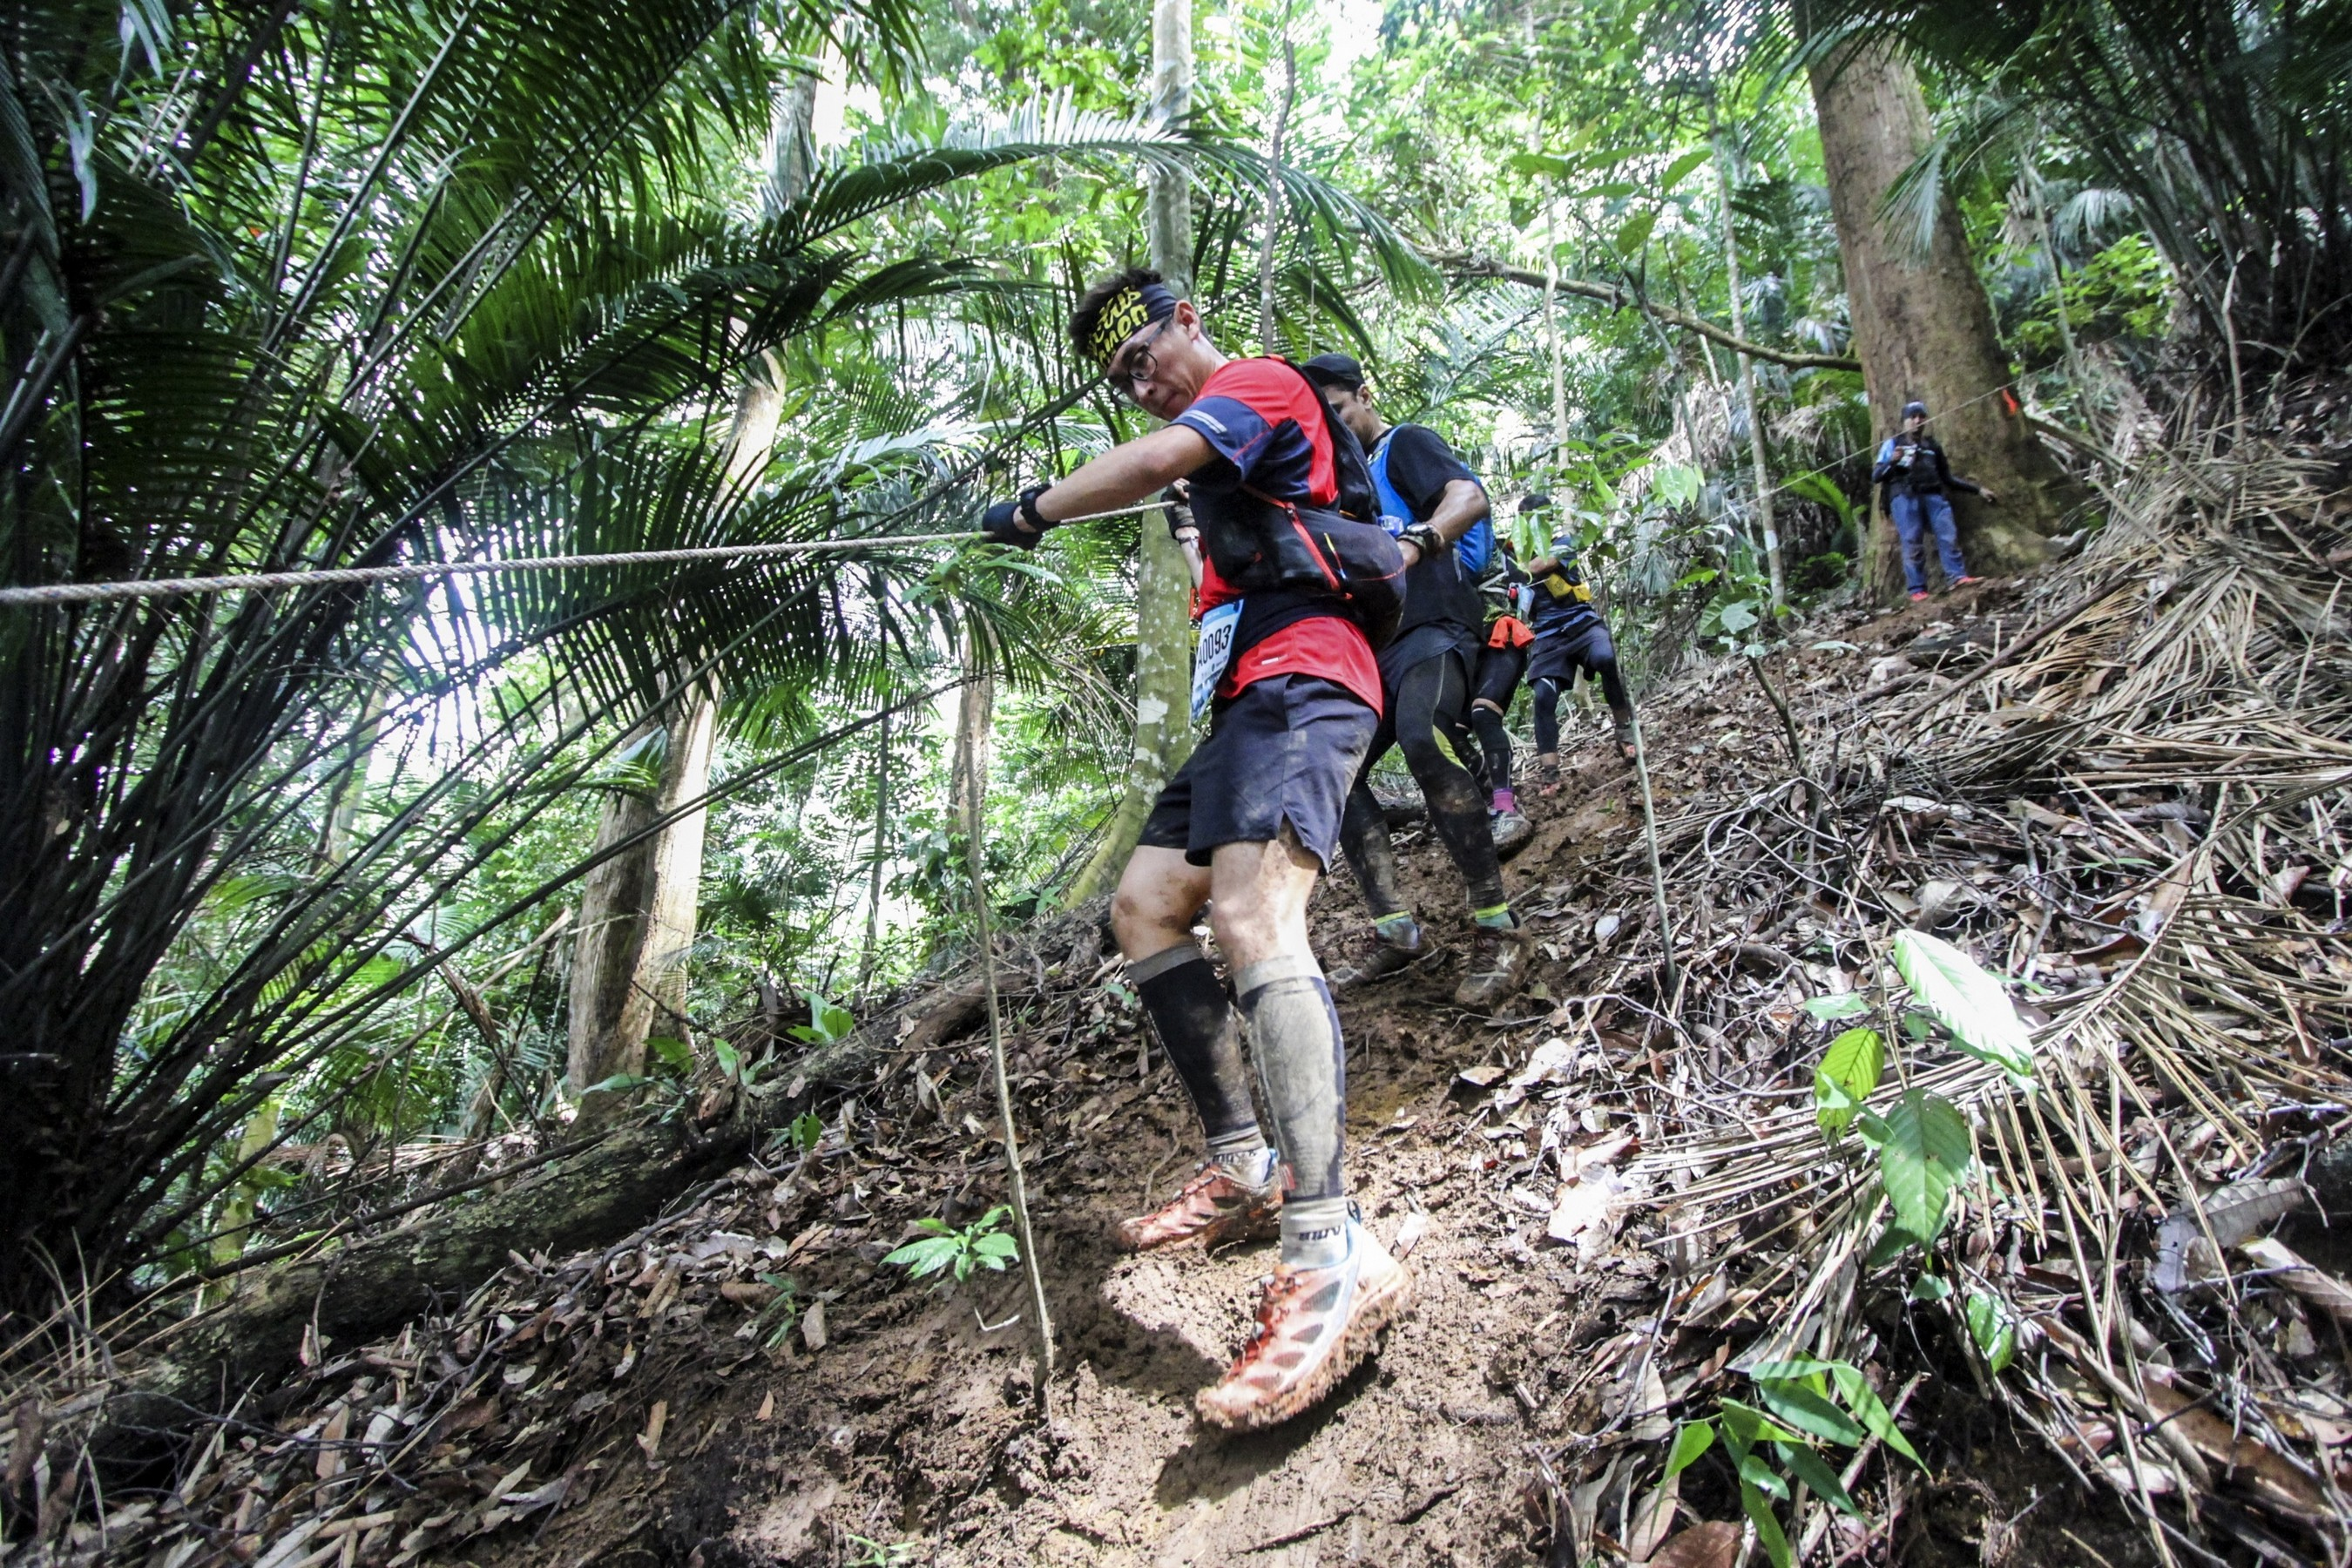 4) MMTF 2018 - Runners making their way in the forest trail (2)